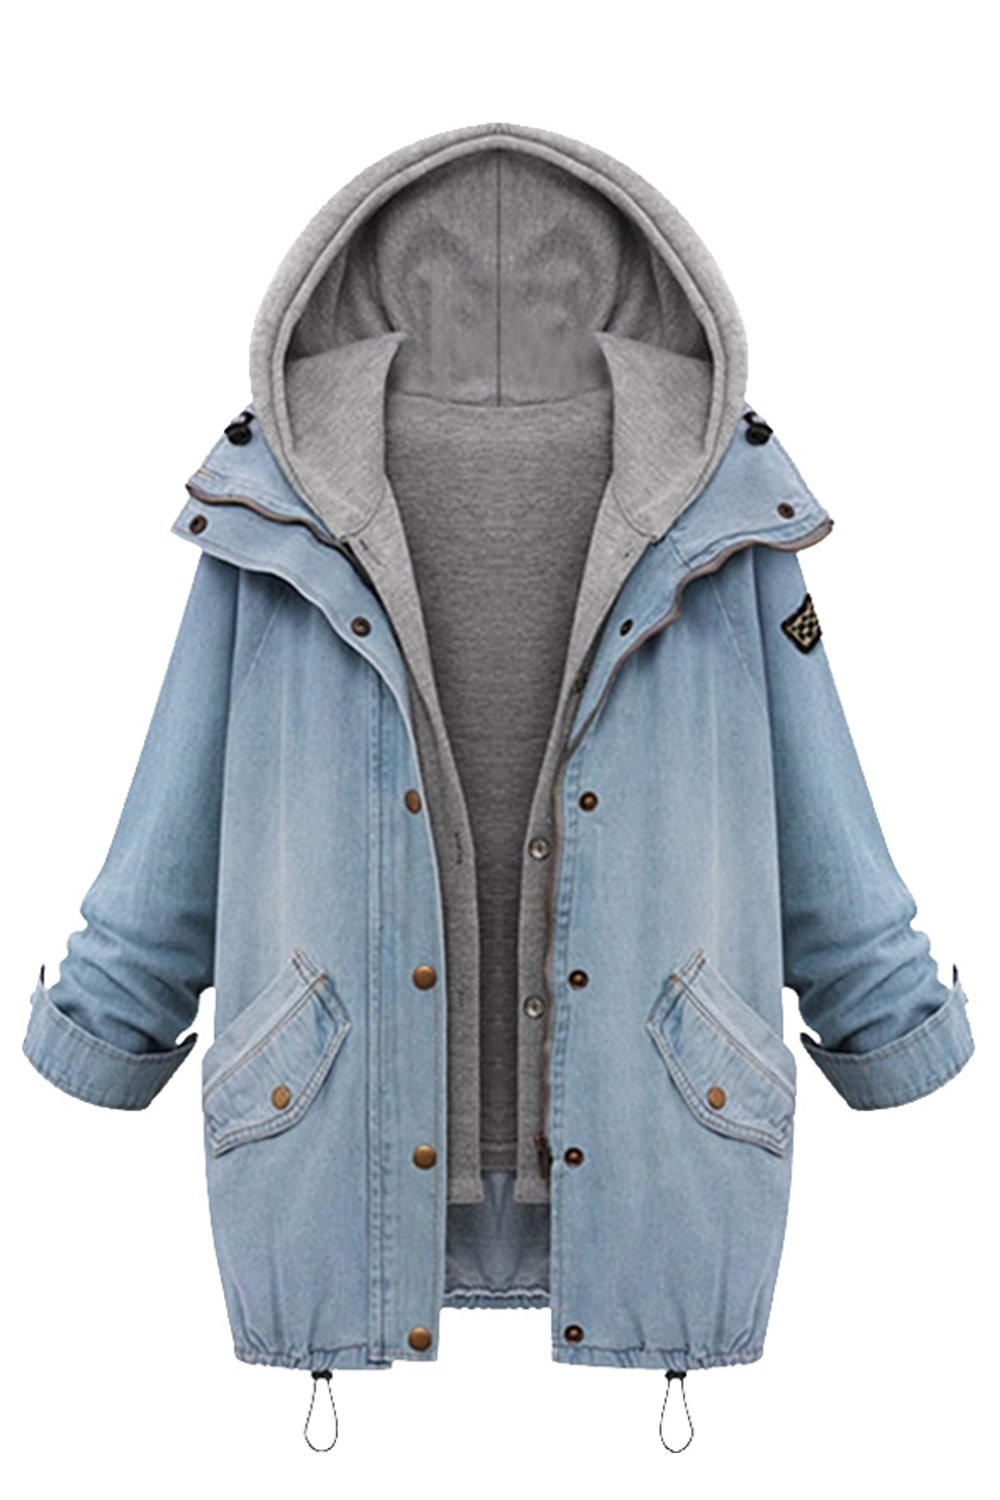 Zilcremo Women Casual 2 Pieces Washed Hooded Denim Jacket Outcoat Outwear Plus Size CAFZ897